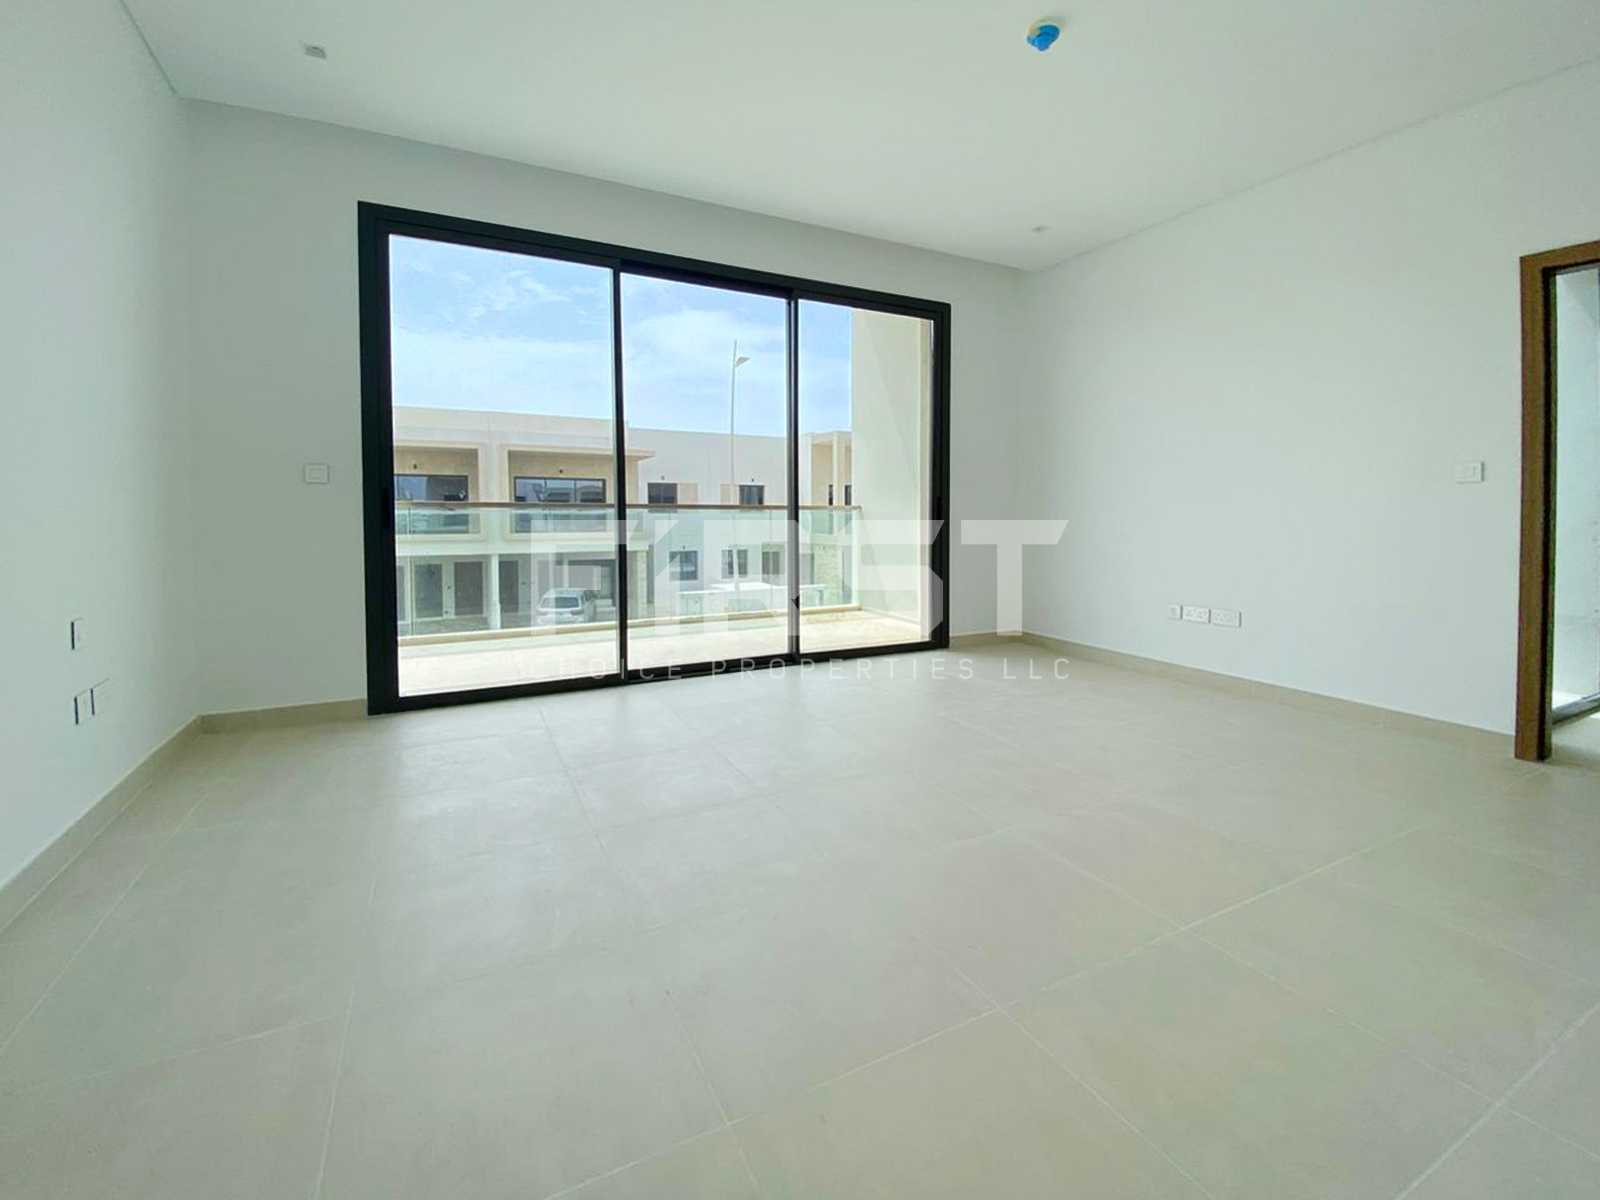 Internal Photo of 3 Bedroom Duplex Type Y in Yas Acres Yas Island Abu Dhabi UAE (1).jpg